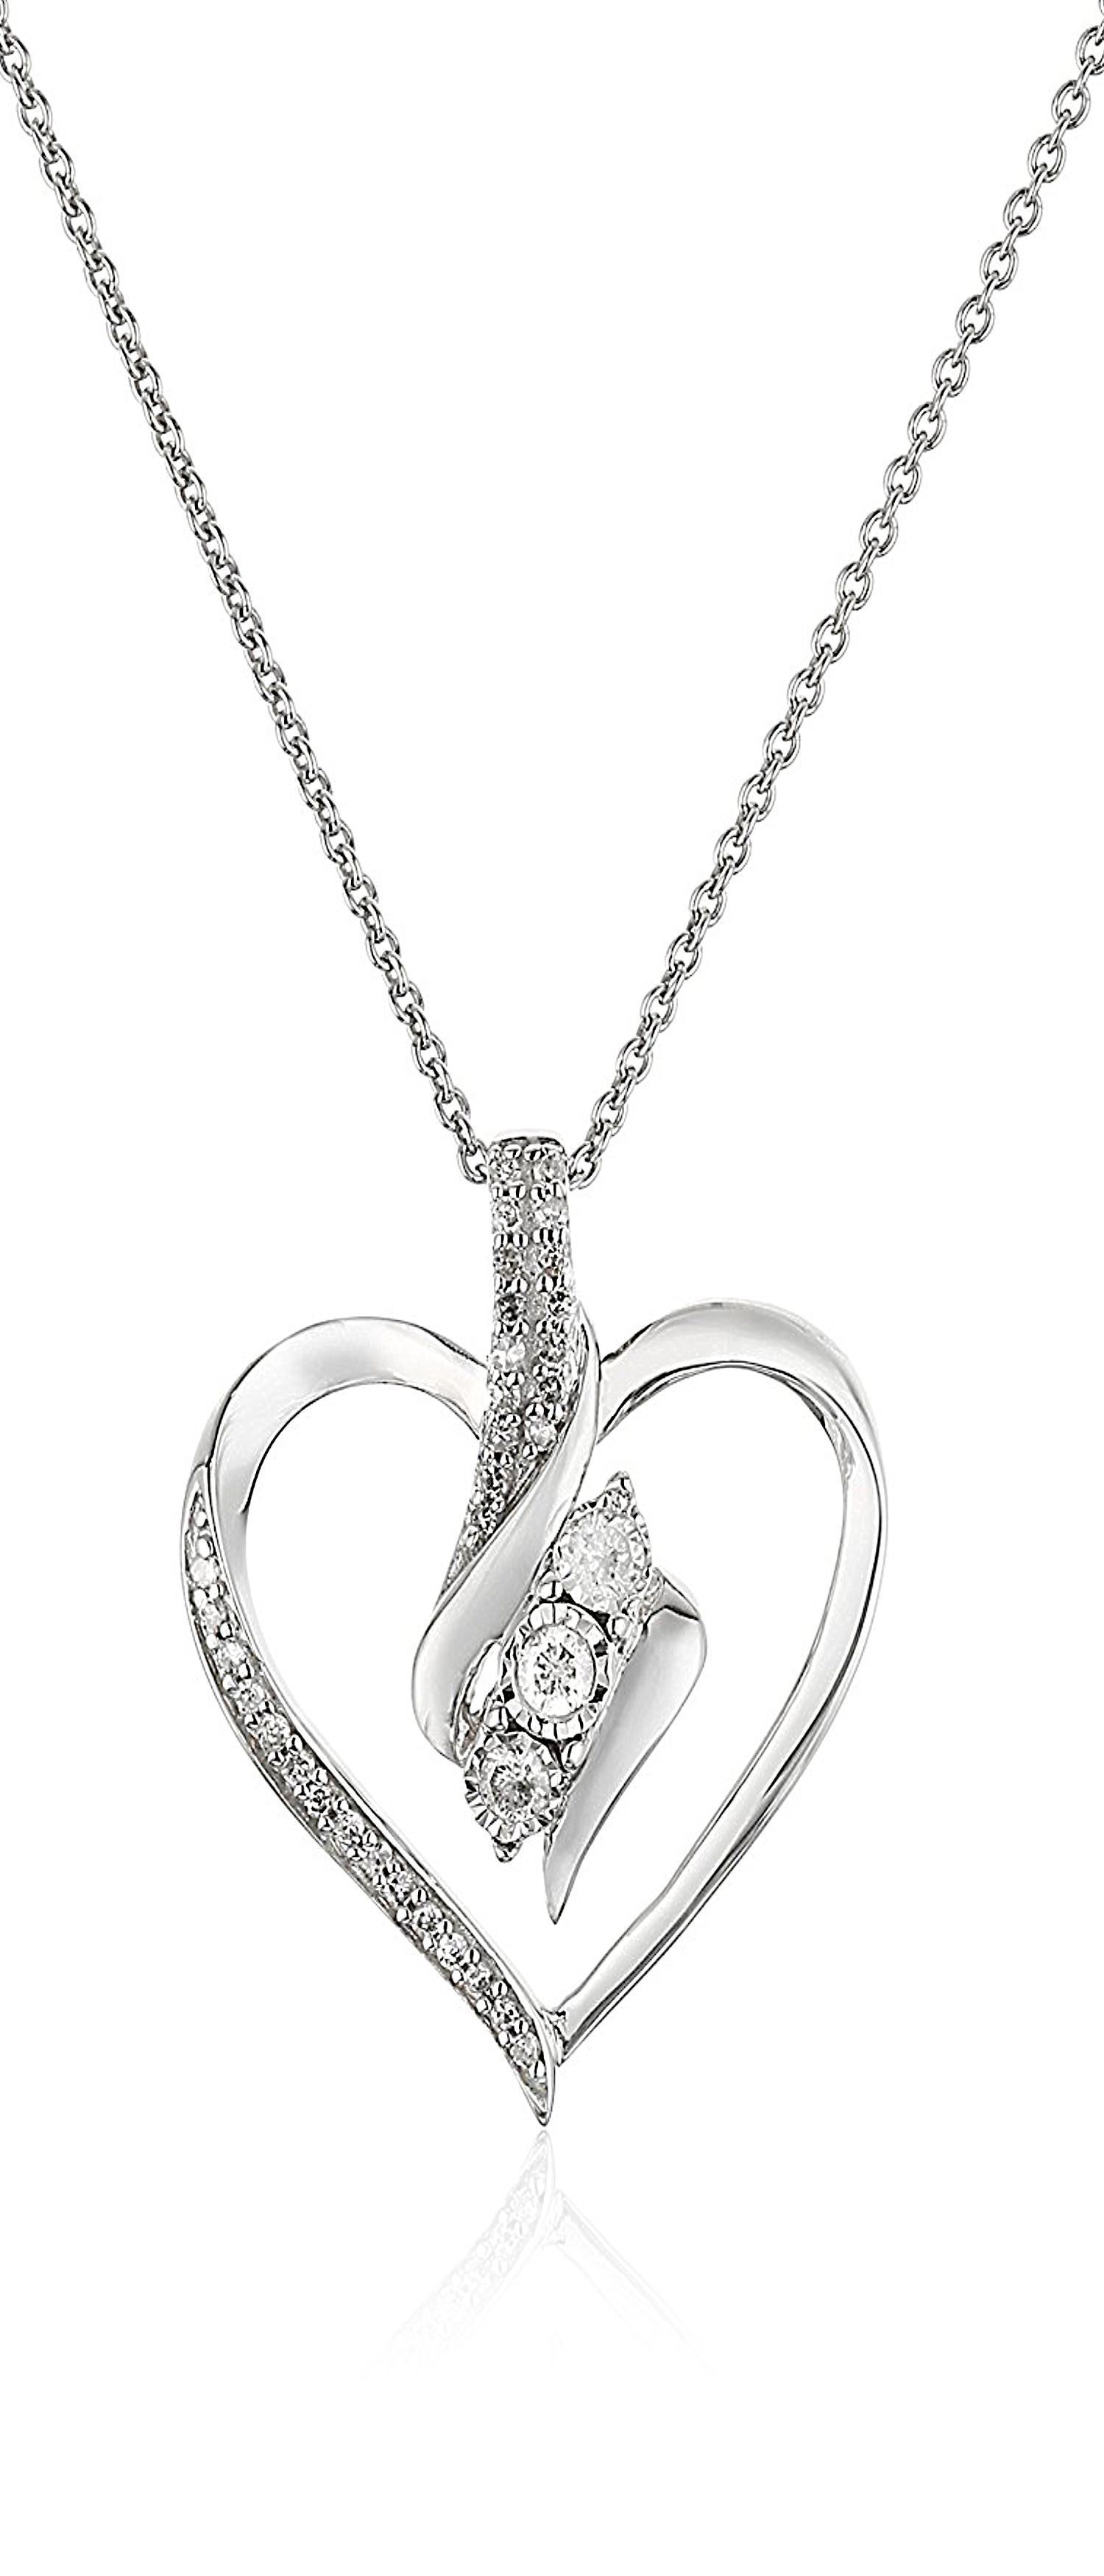 Sterling silver diamond stone heart pendant necklace cttw